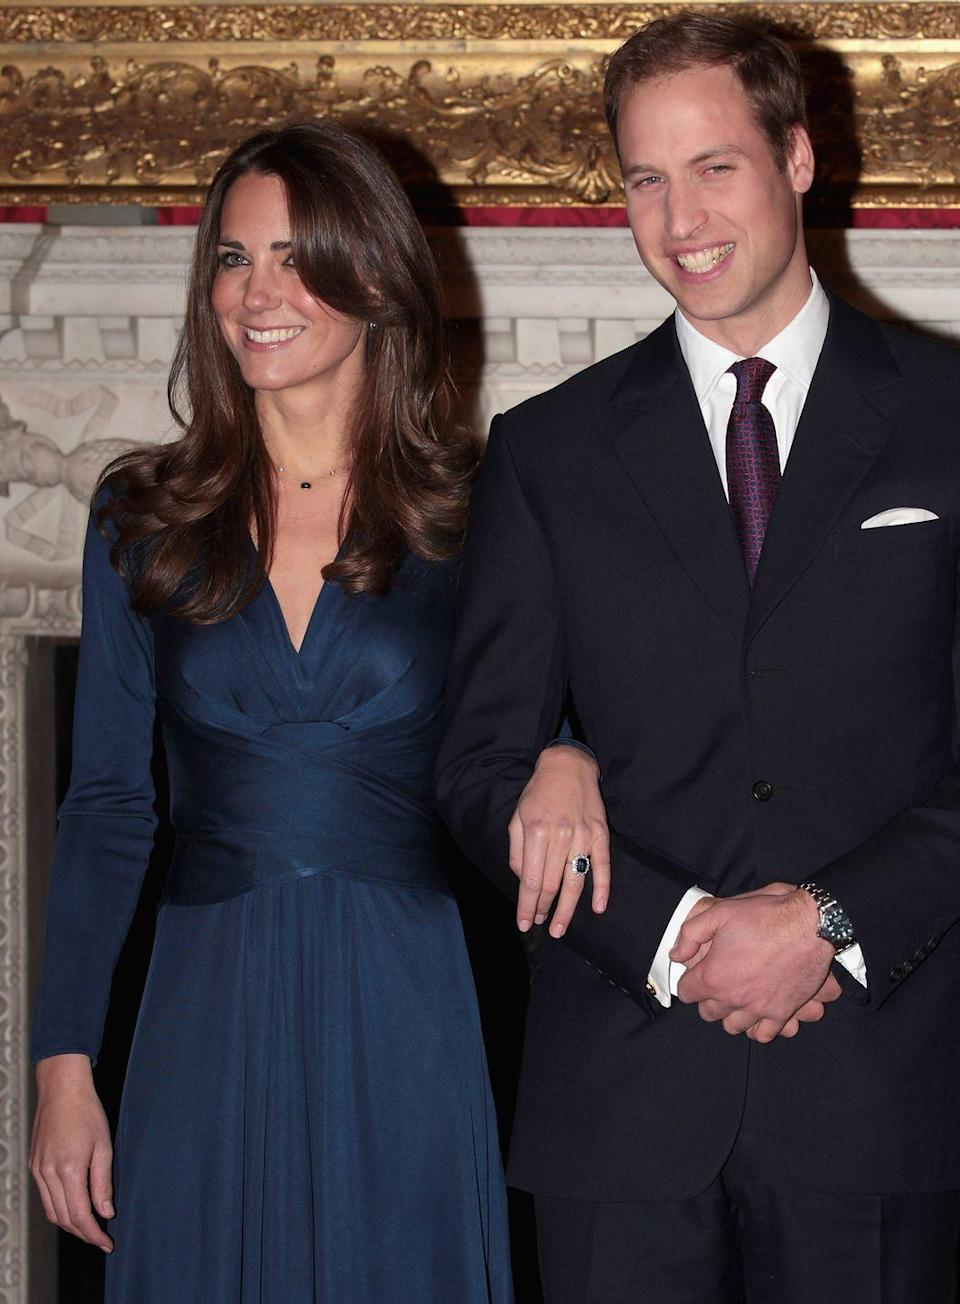 "<p>As a way to honor his mother, Prince William asked Kate Middleton to marry him with his mother's ring. The ring was too big, so <a href=""https://www.goodhousekeeping.com/life/a22727712/princess-diana-engagement-ring/"" rel=""nofollow noopener"" target=""_blank"" data-ylk=""slk:platinum beads were placed inside"" class=""link rapid-noclick-resp"">platinum beads were placed inside</a> to make it smaller. Now, the ring is worth nearly $500,000.</p>"